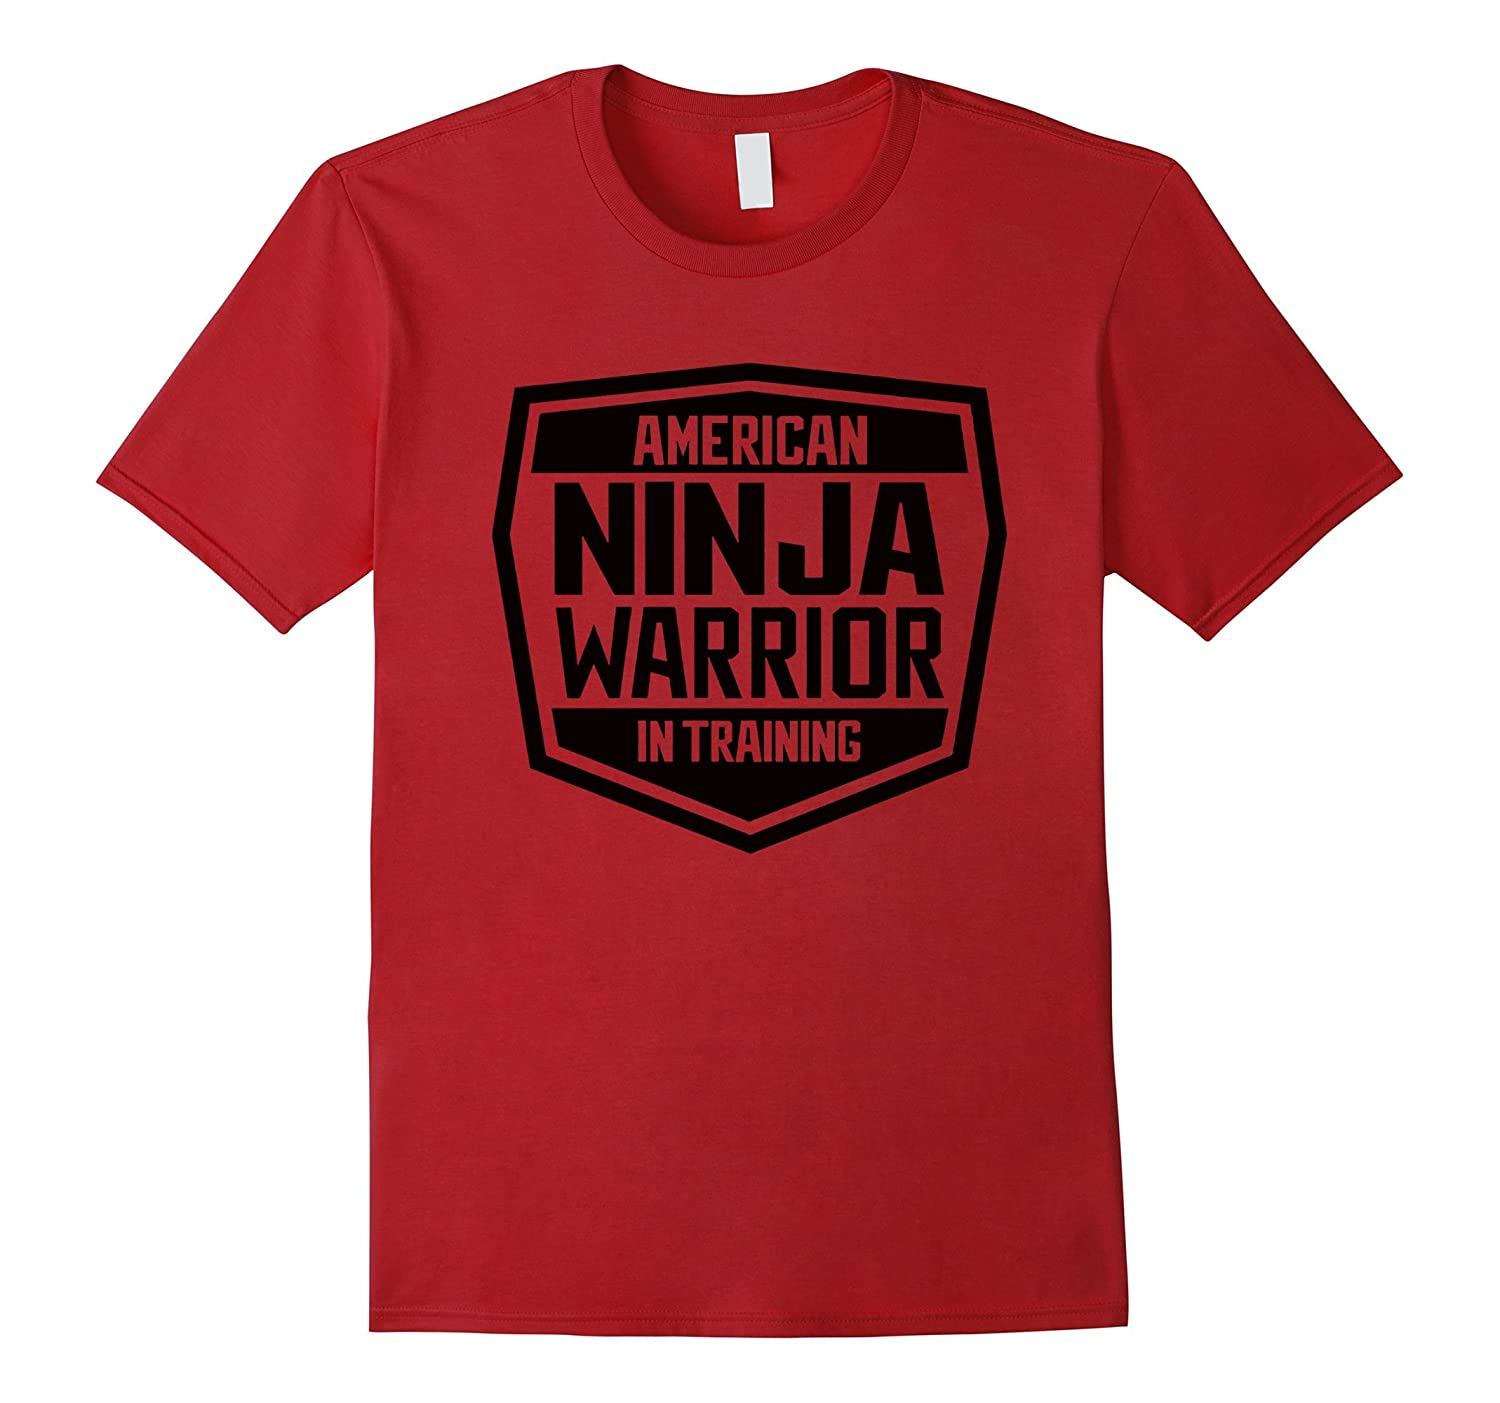 Ni-nja warri-or t shirts tees for kid, men and women Tshirt-CL